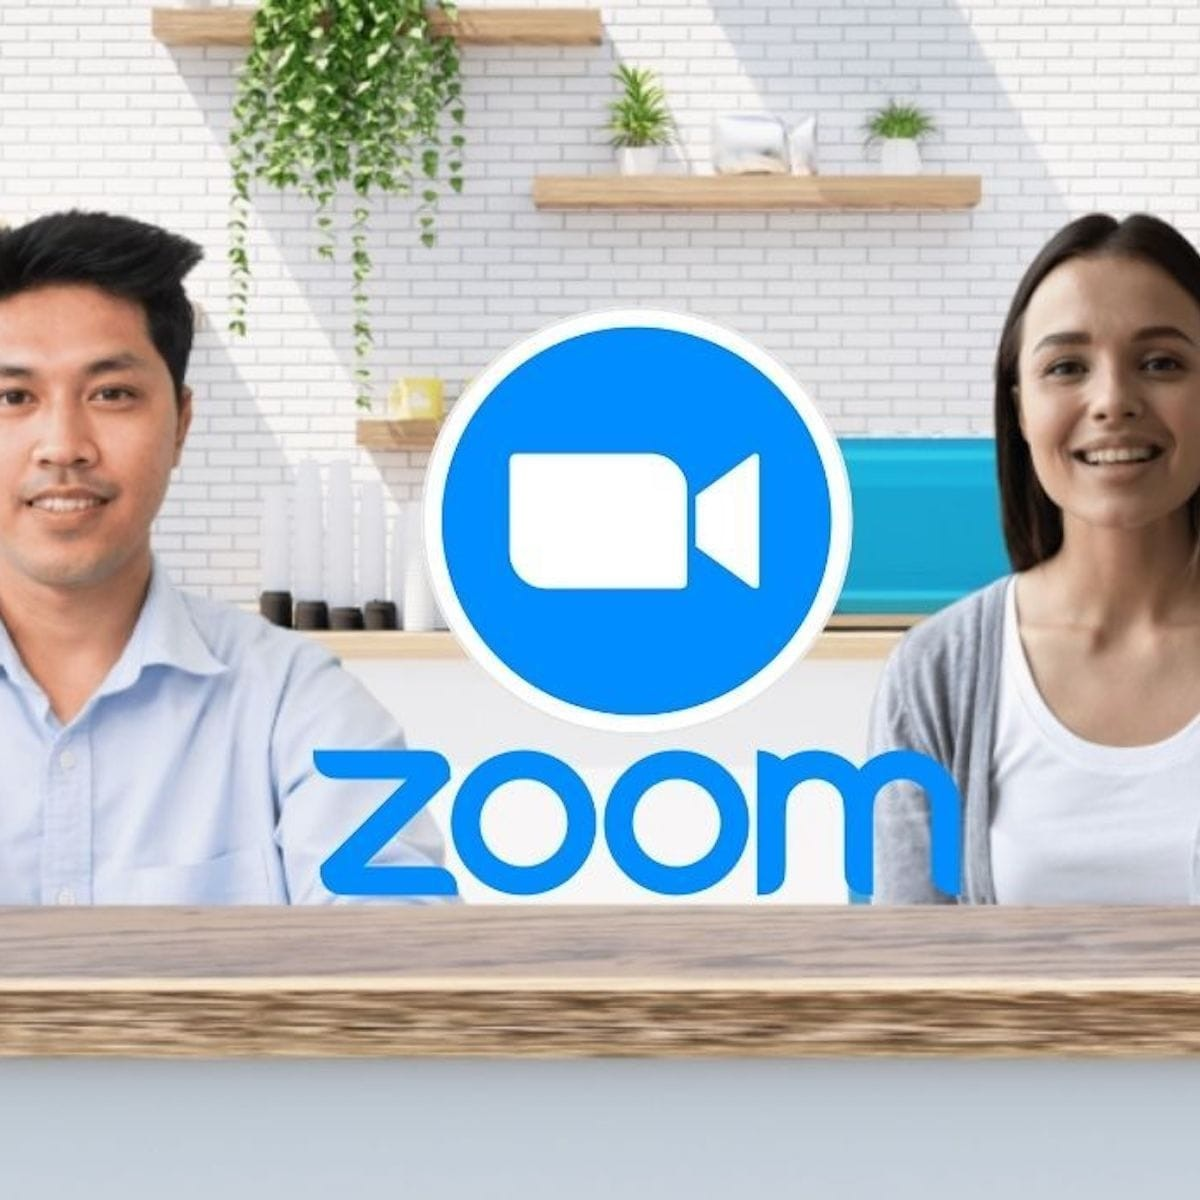 Zoom's Immersive View feature lets you simulate an office or auditorium in an online meeting thumbnail